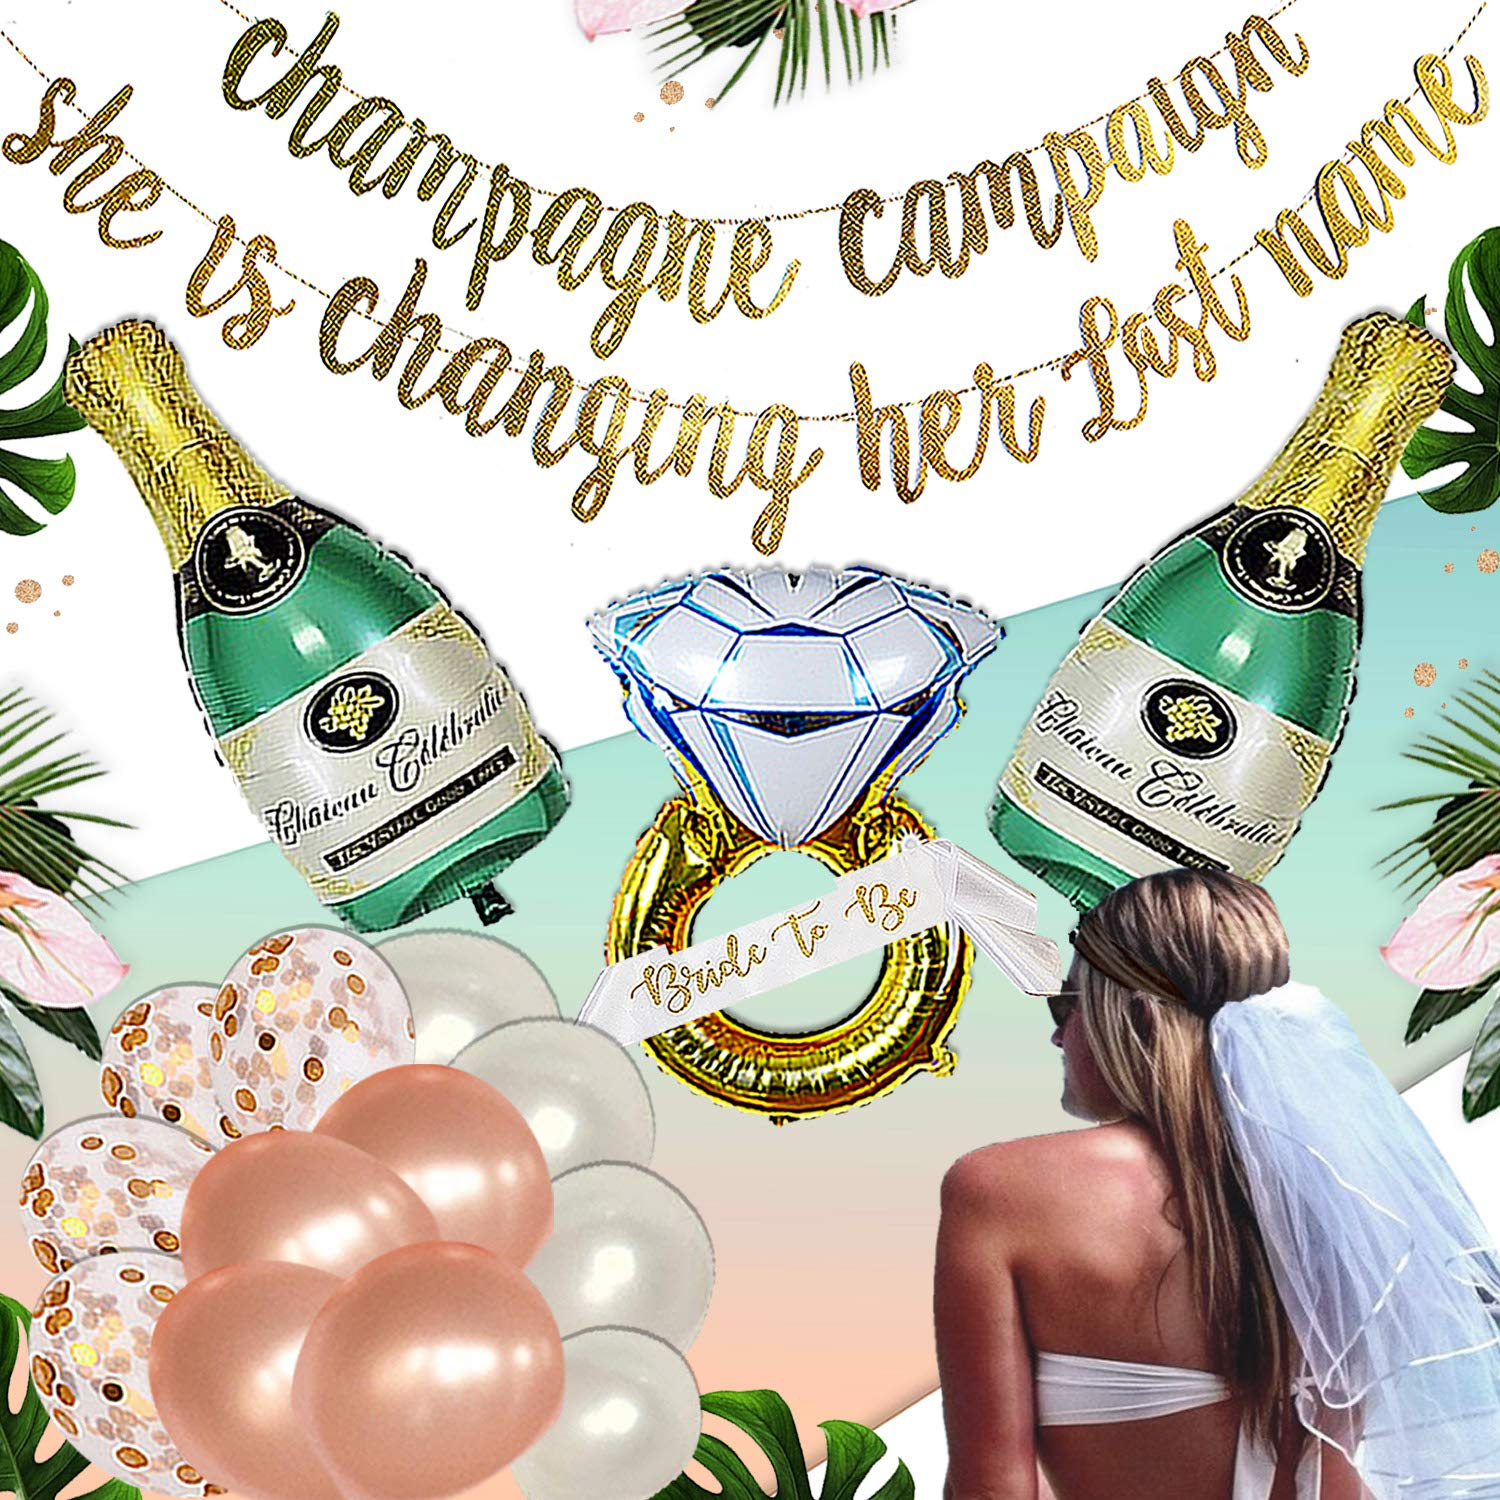 Bachelorette Party Decorations Kit | Bridal Shower Supplies | Bride to Be Sash, Ring and Champagne Foil, Rose Balloons, Gold Glitter Banner | Champagne Campaign she is changing her last name